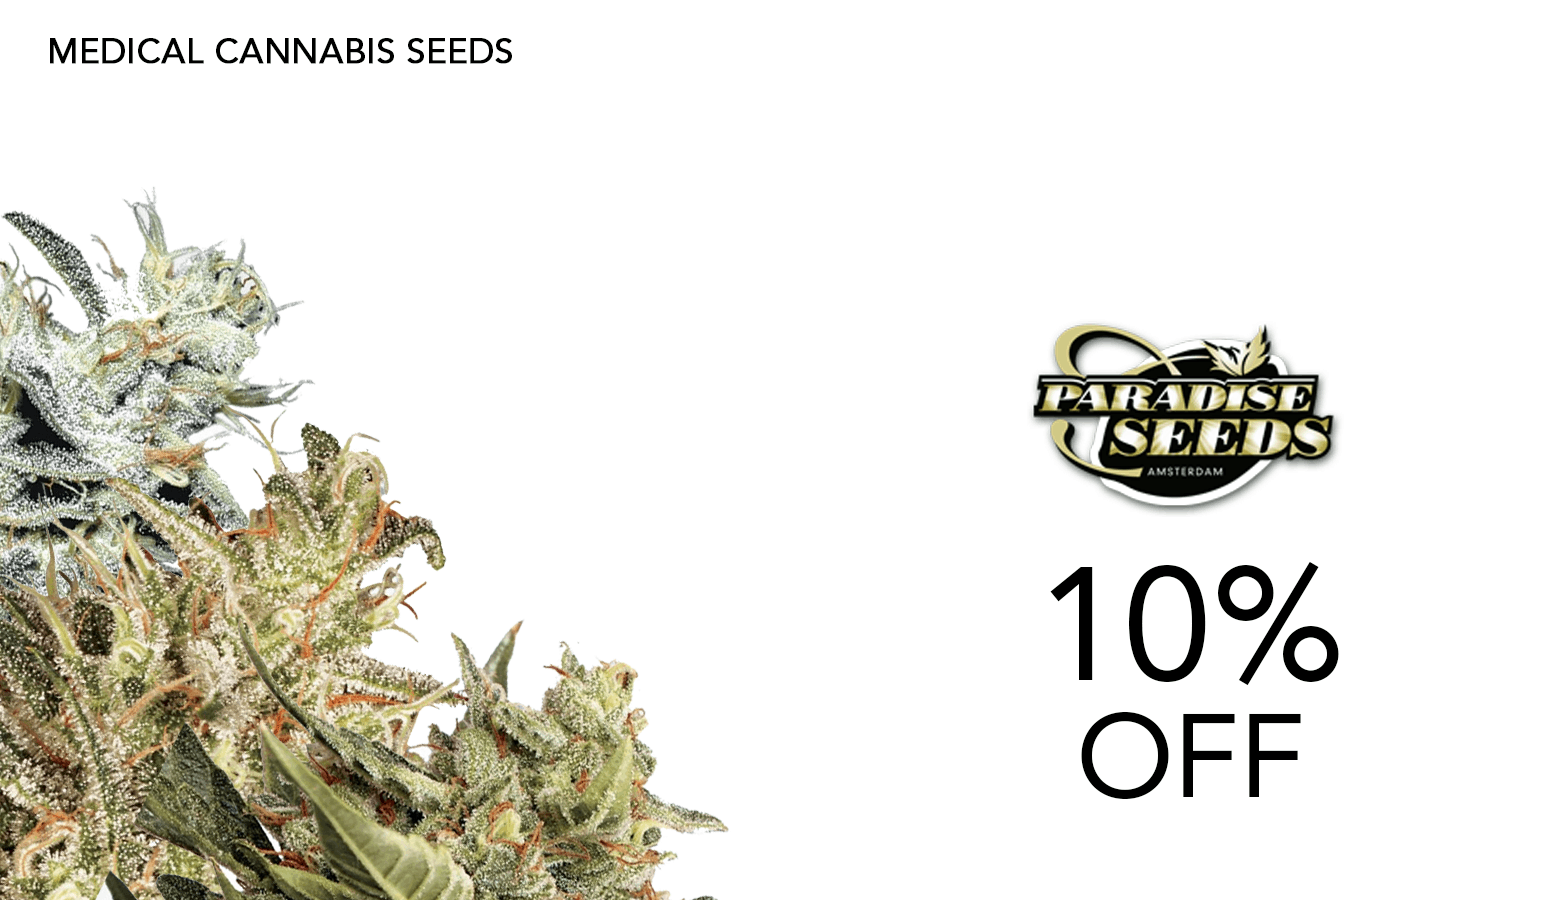 Paradise Seeds CBD Coupon Code Website